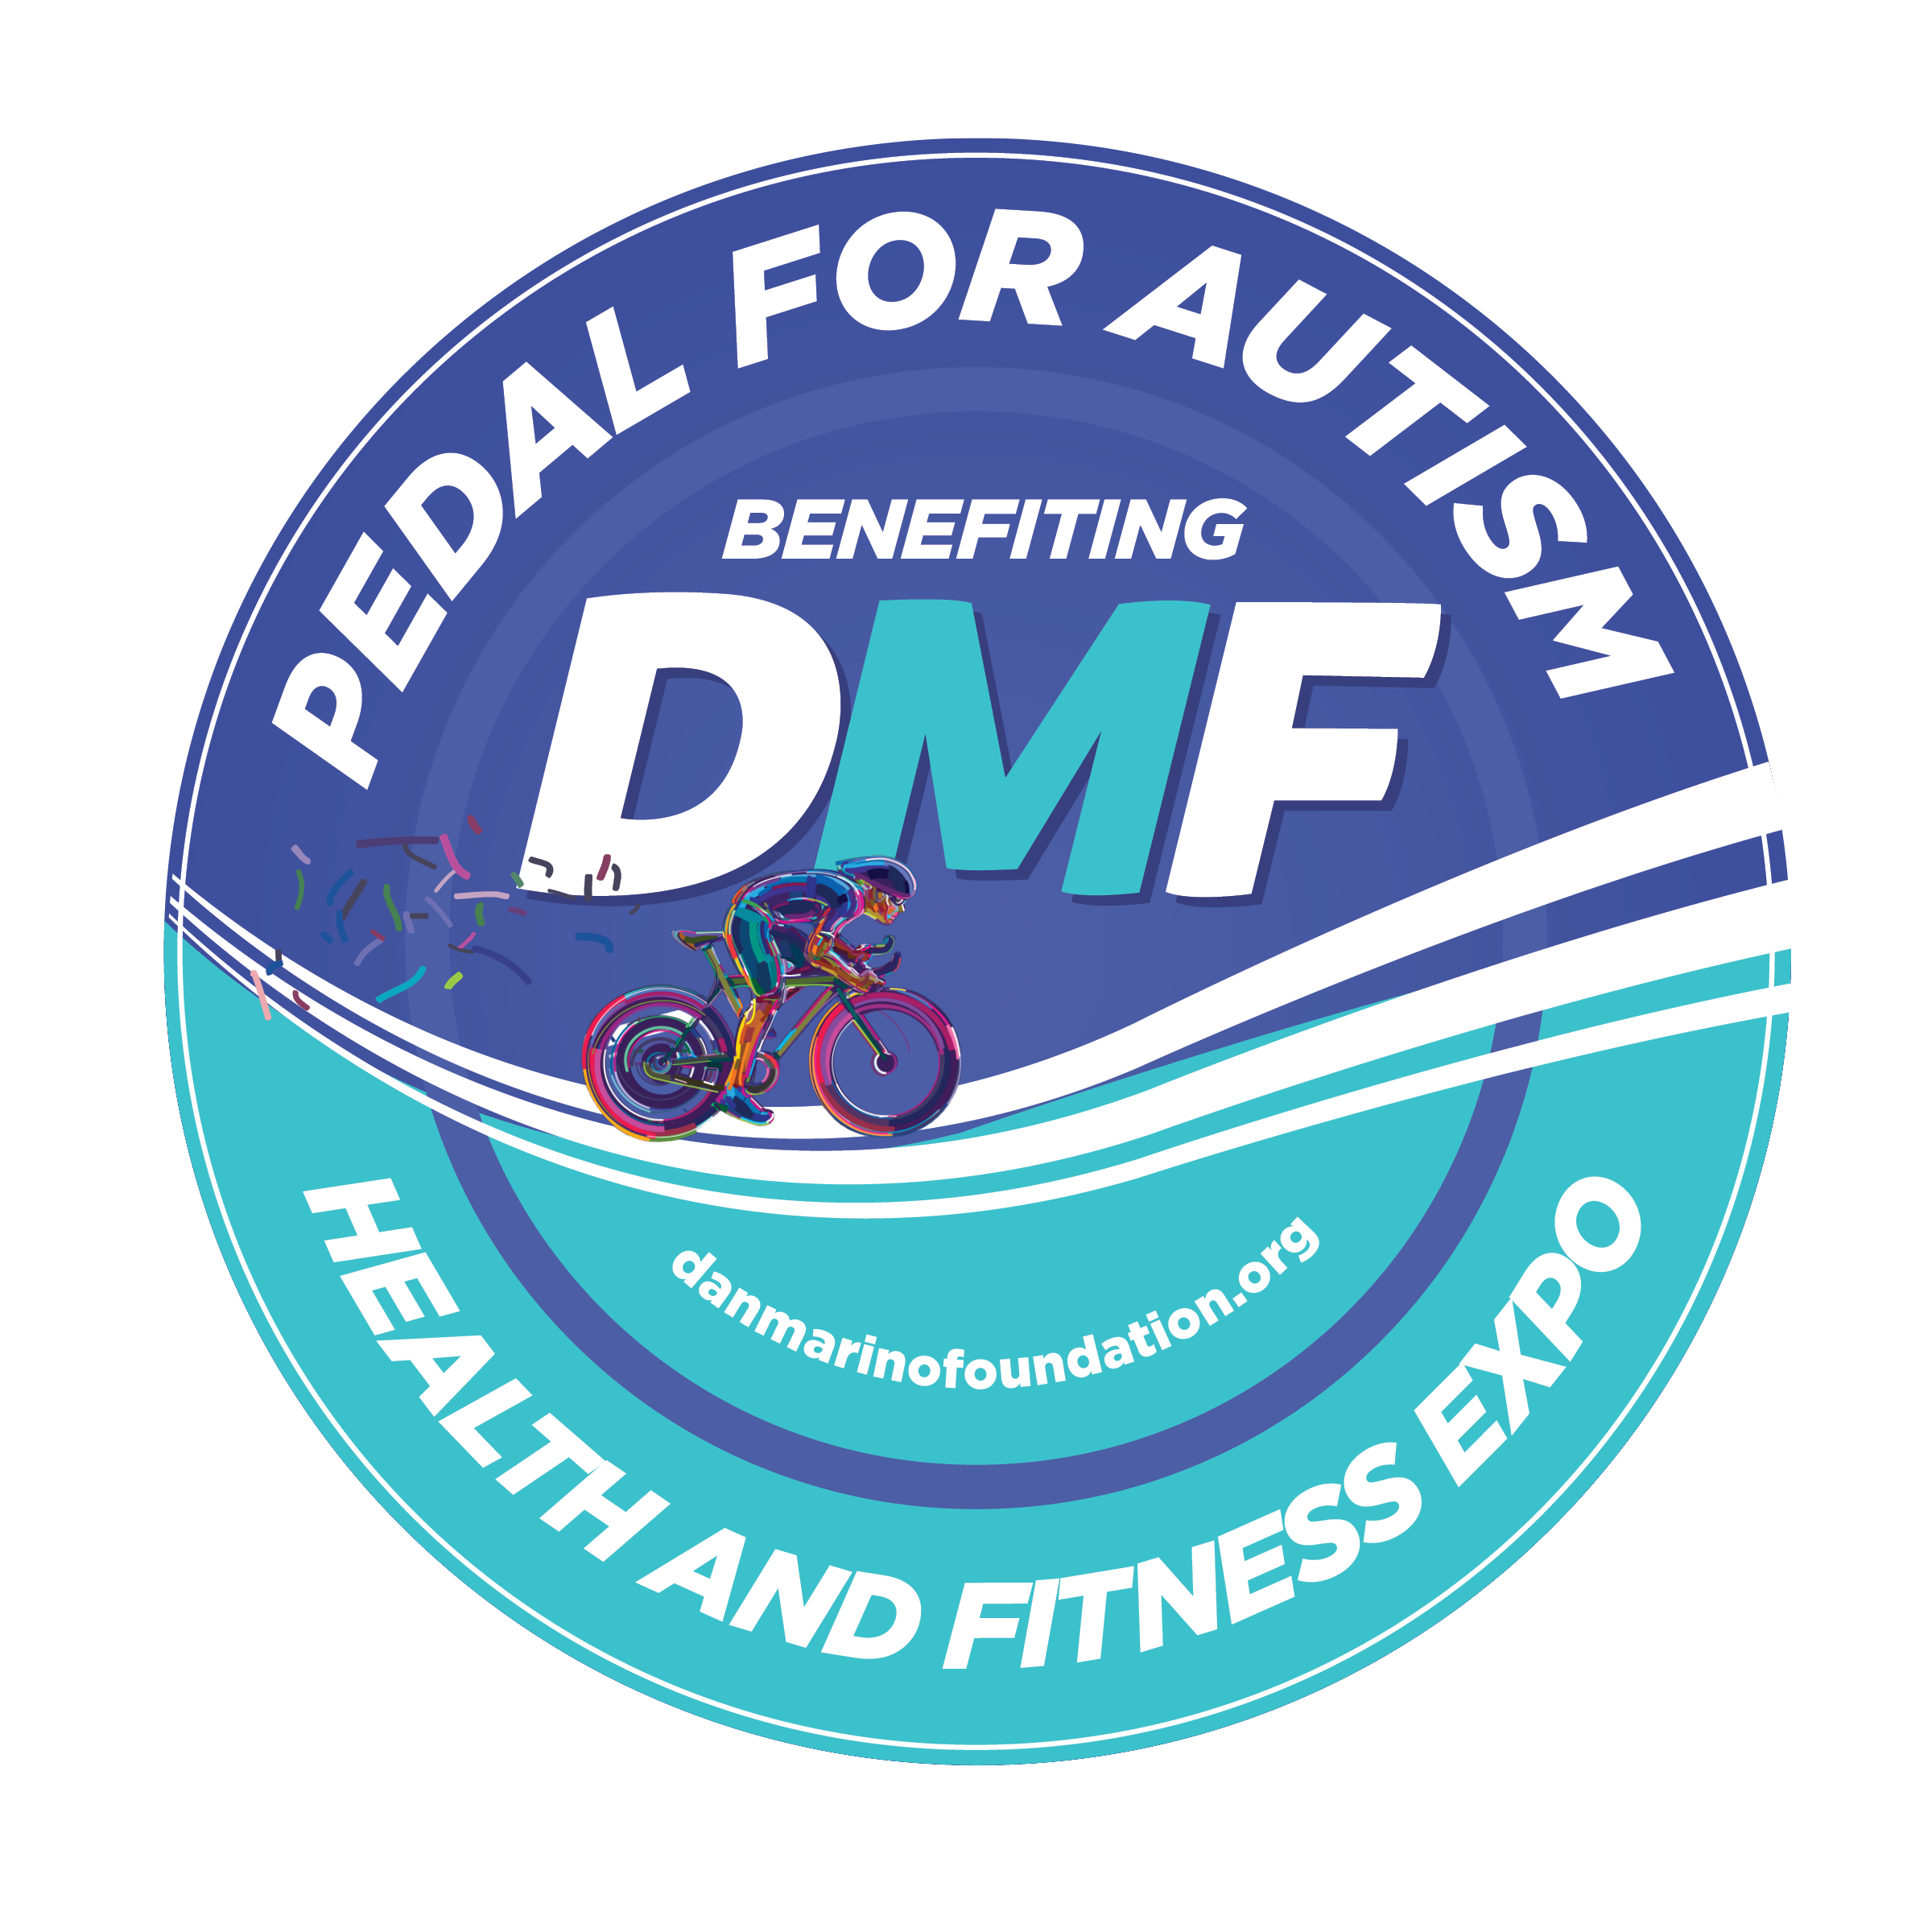 Training Ride for Pedal for Autism